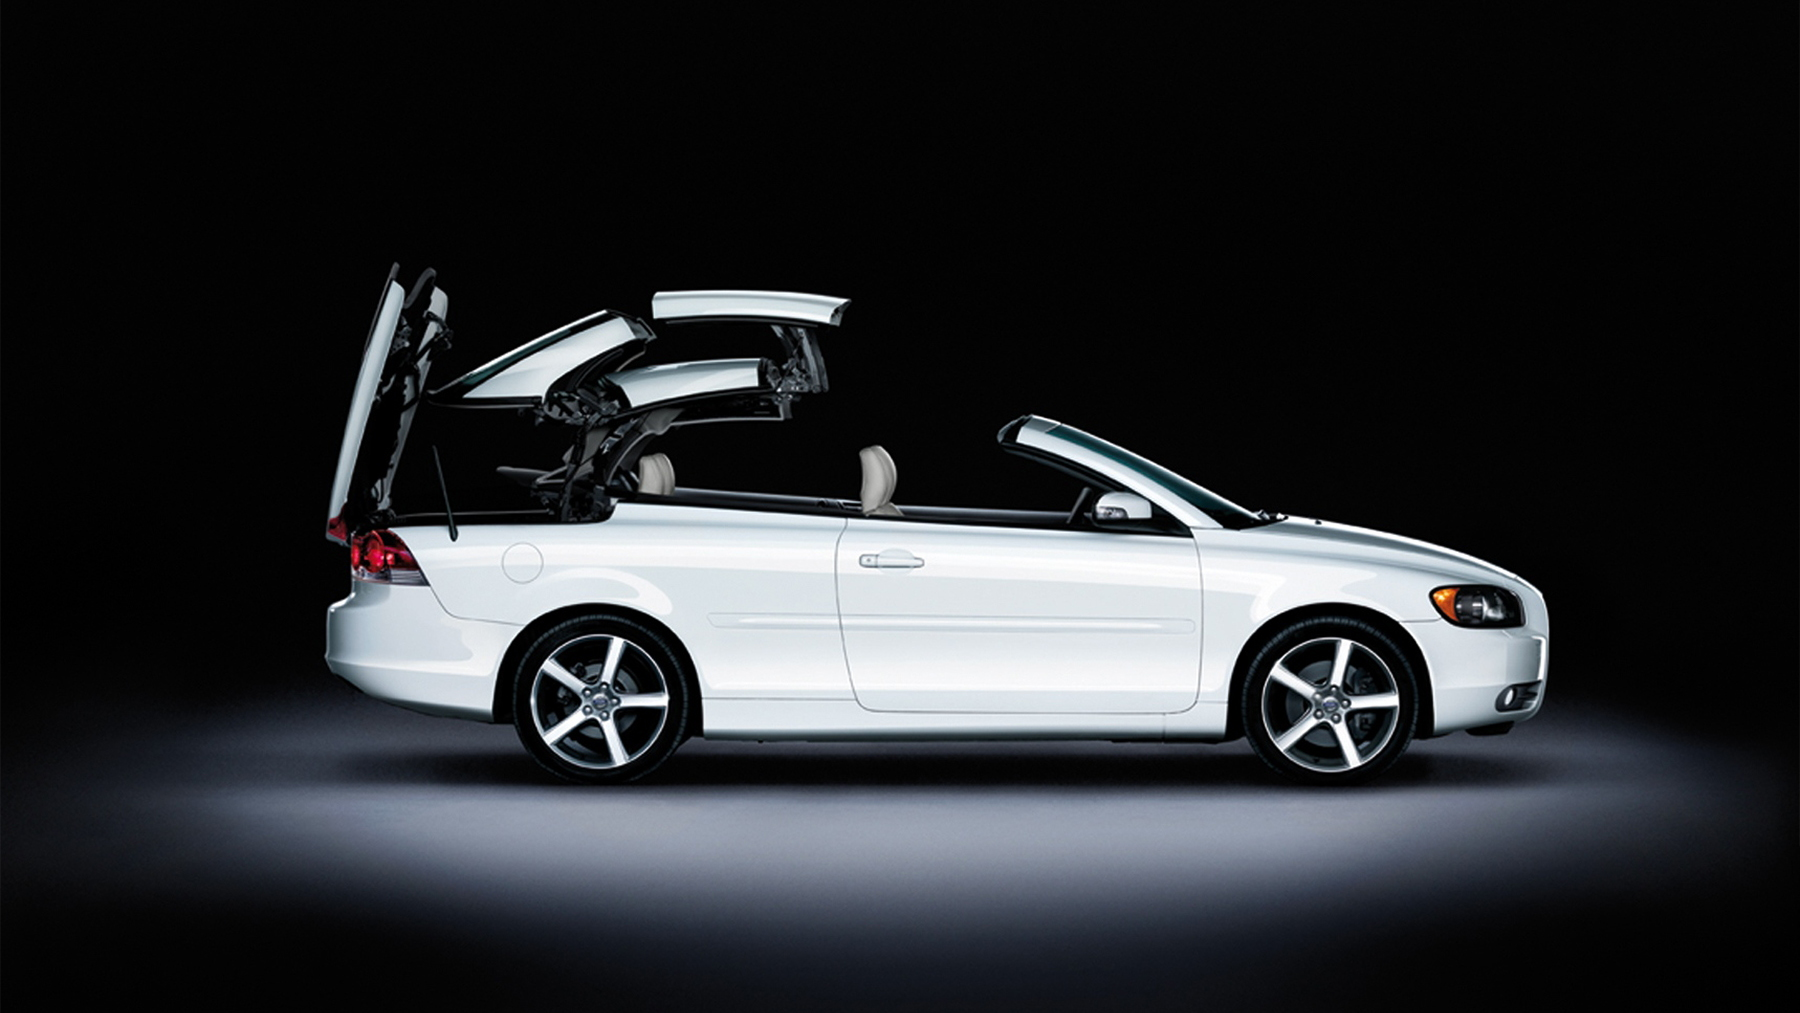 2009 volvo c70 ice white special edition 002